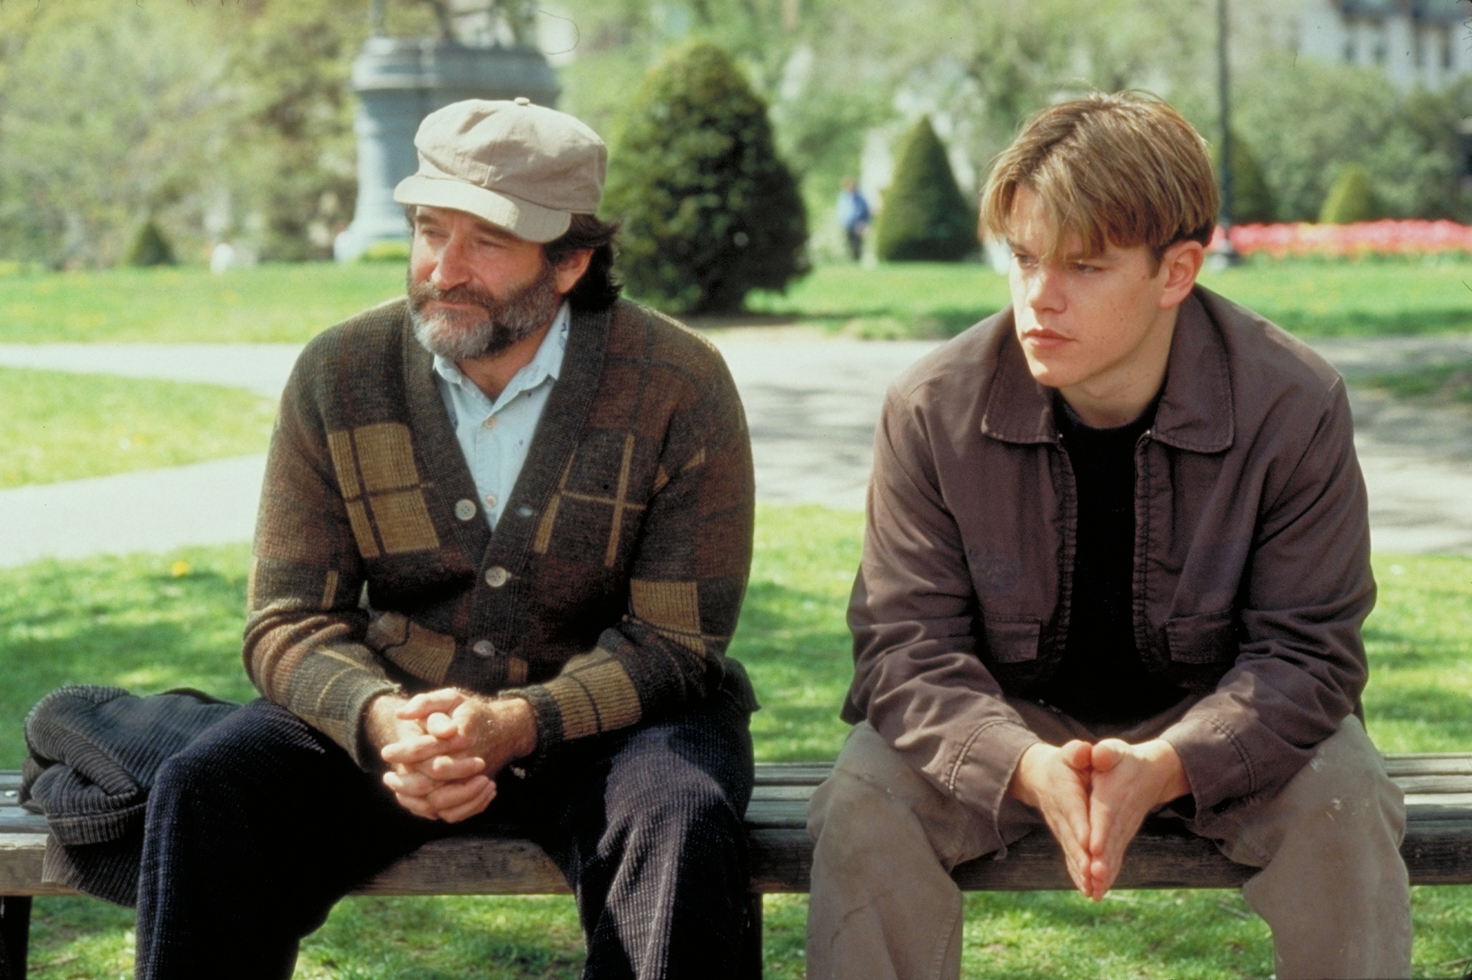 Robin Williams and Matt Damon in Good Will Hunting. Source: www.hecatholiccatalogue.com